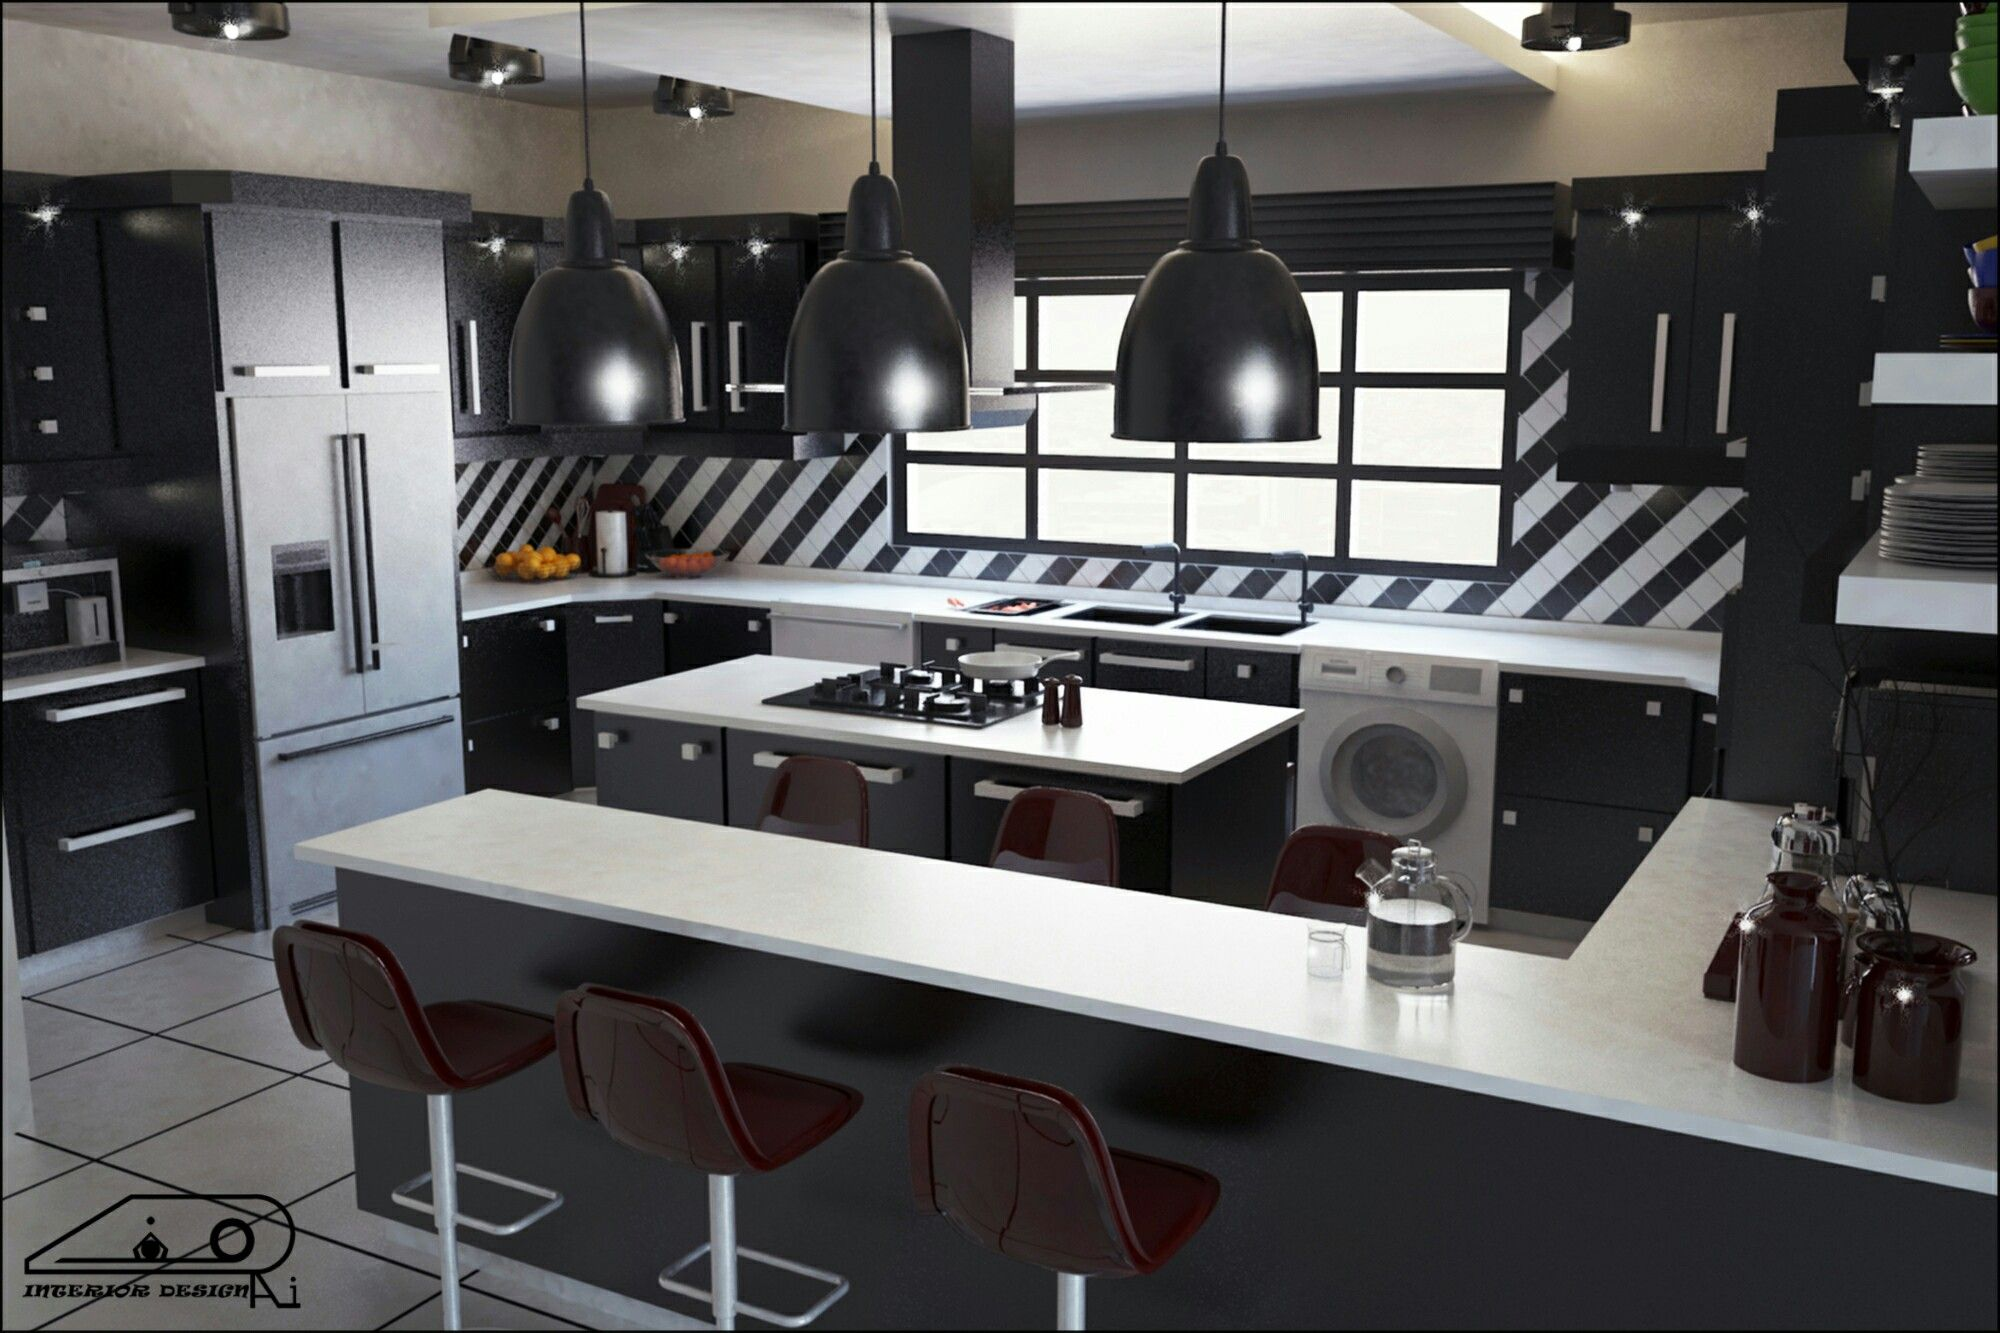 Kitchen Design... P1 Software: 3d Max, V Ray, Photoshop